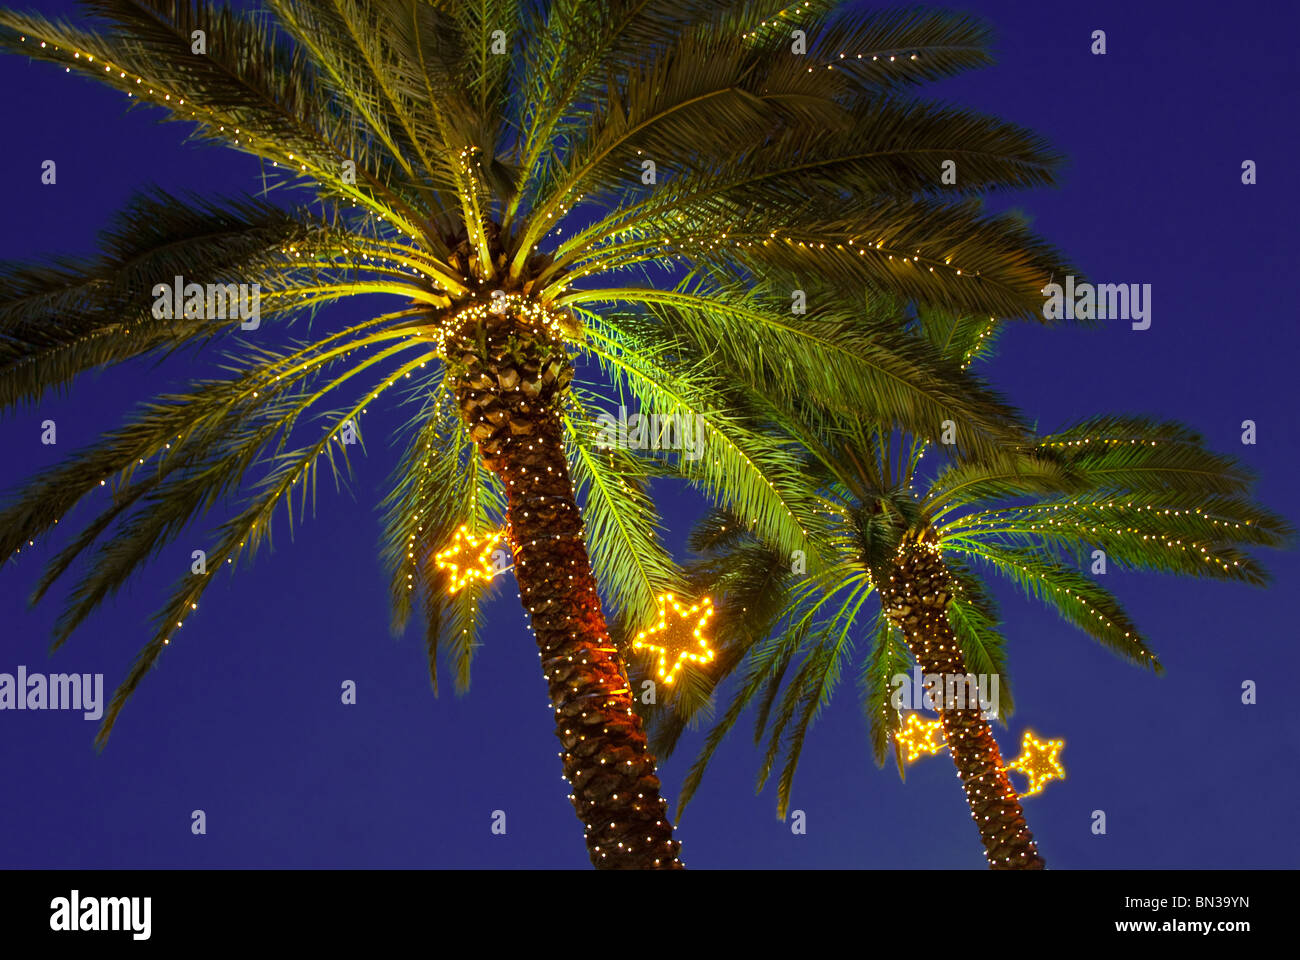 during christmas season palm trees are decorated with lights in the normandy isle neighborhood in miami - Palm Tree With Christmas Lights